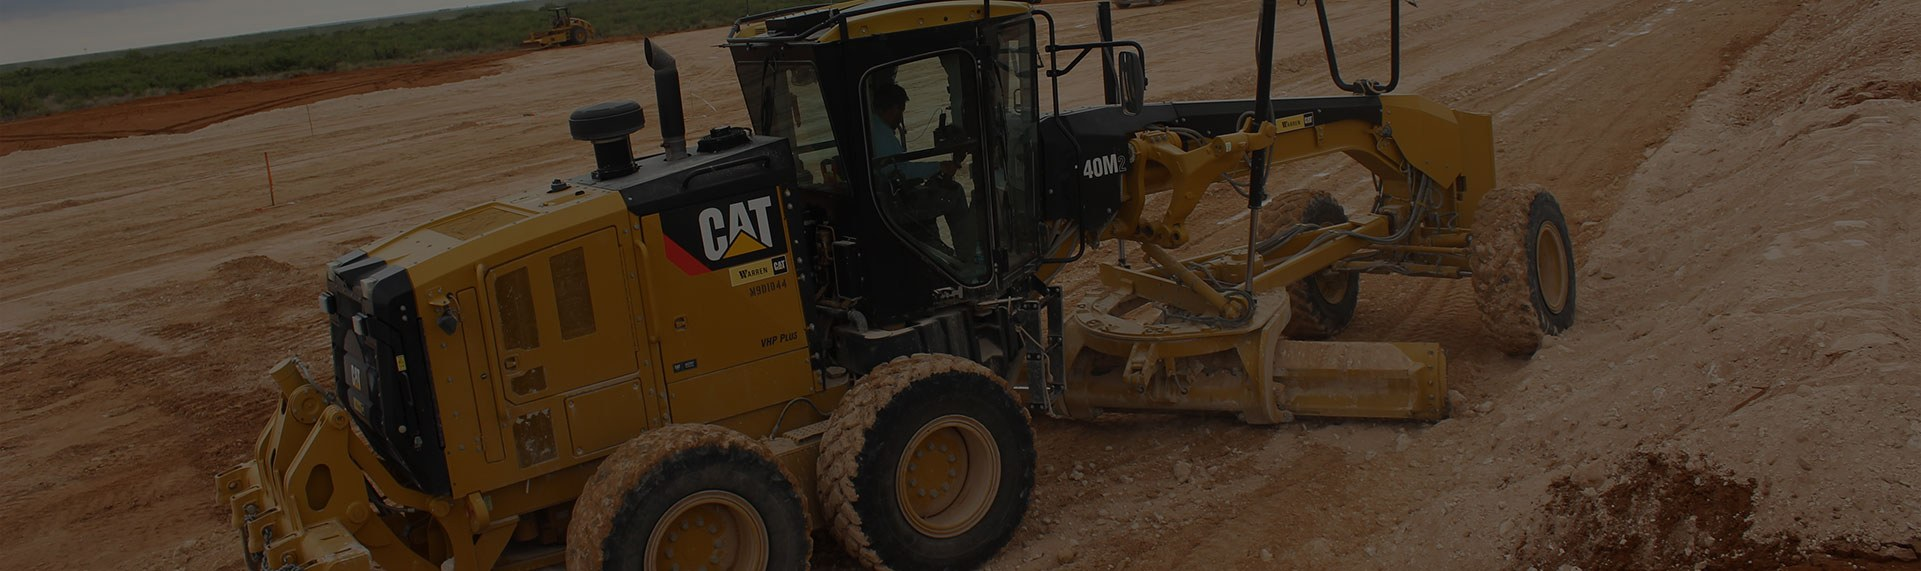 Large yellow caterpillar pulling heavy machinery in a dirt field.